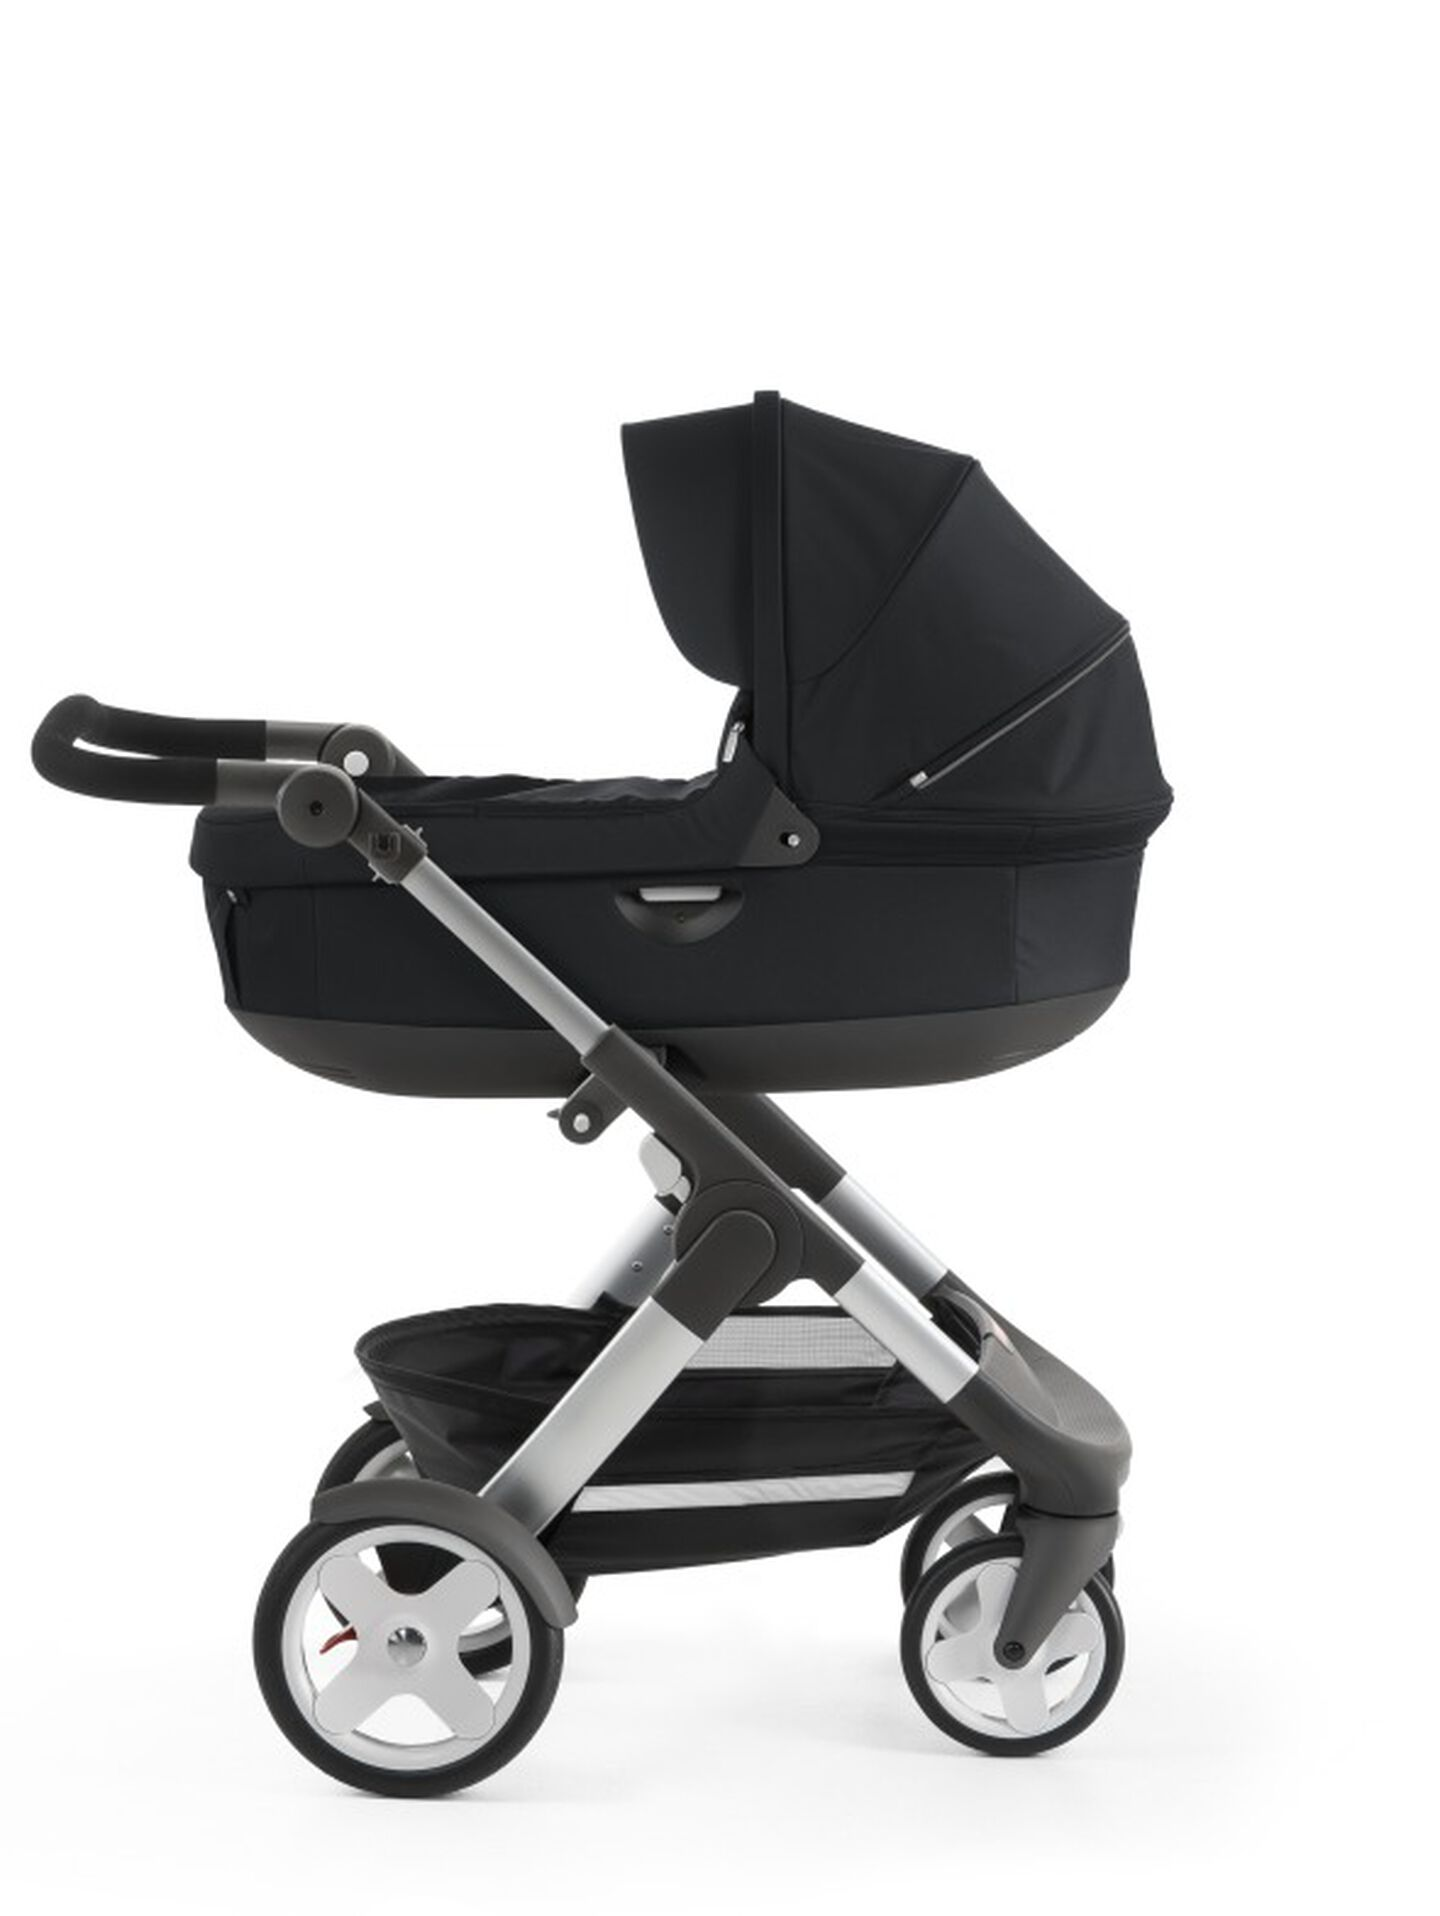 Stokke® Trailz™ with Stokke® Stroller Carry Cot, Black. Classic Wheels. view 2